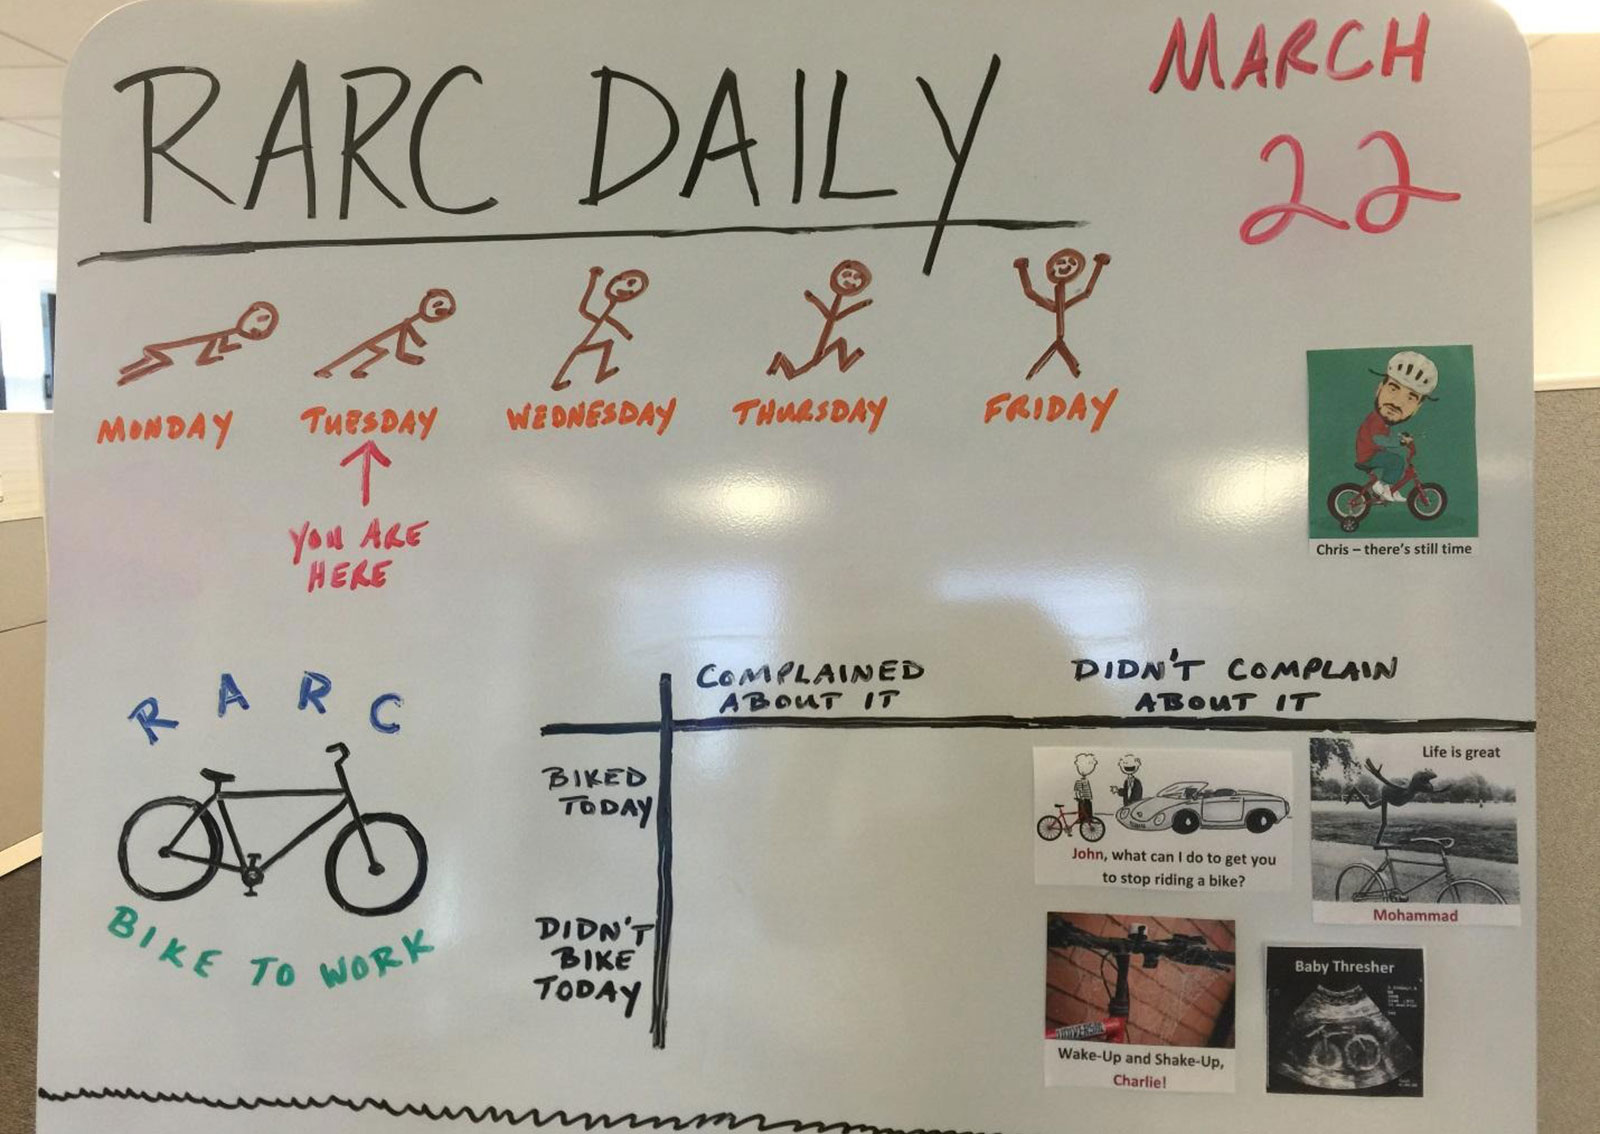 A whiteboard with stick figures for every day o fthe week and a chart about the benefits of biking to work.